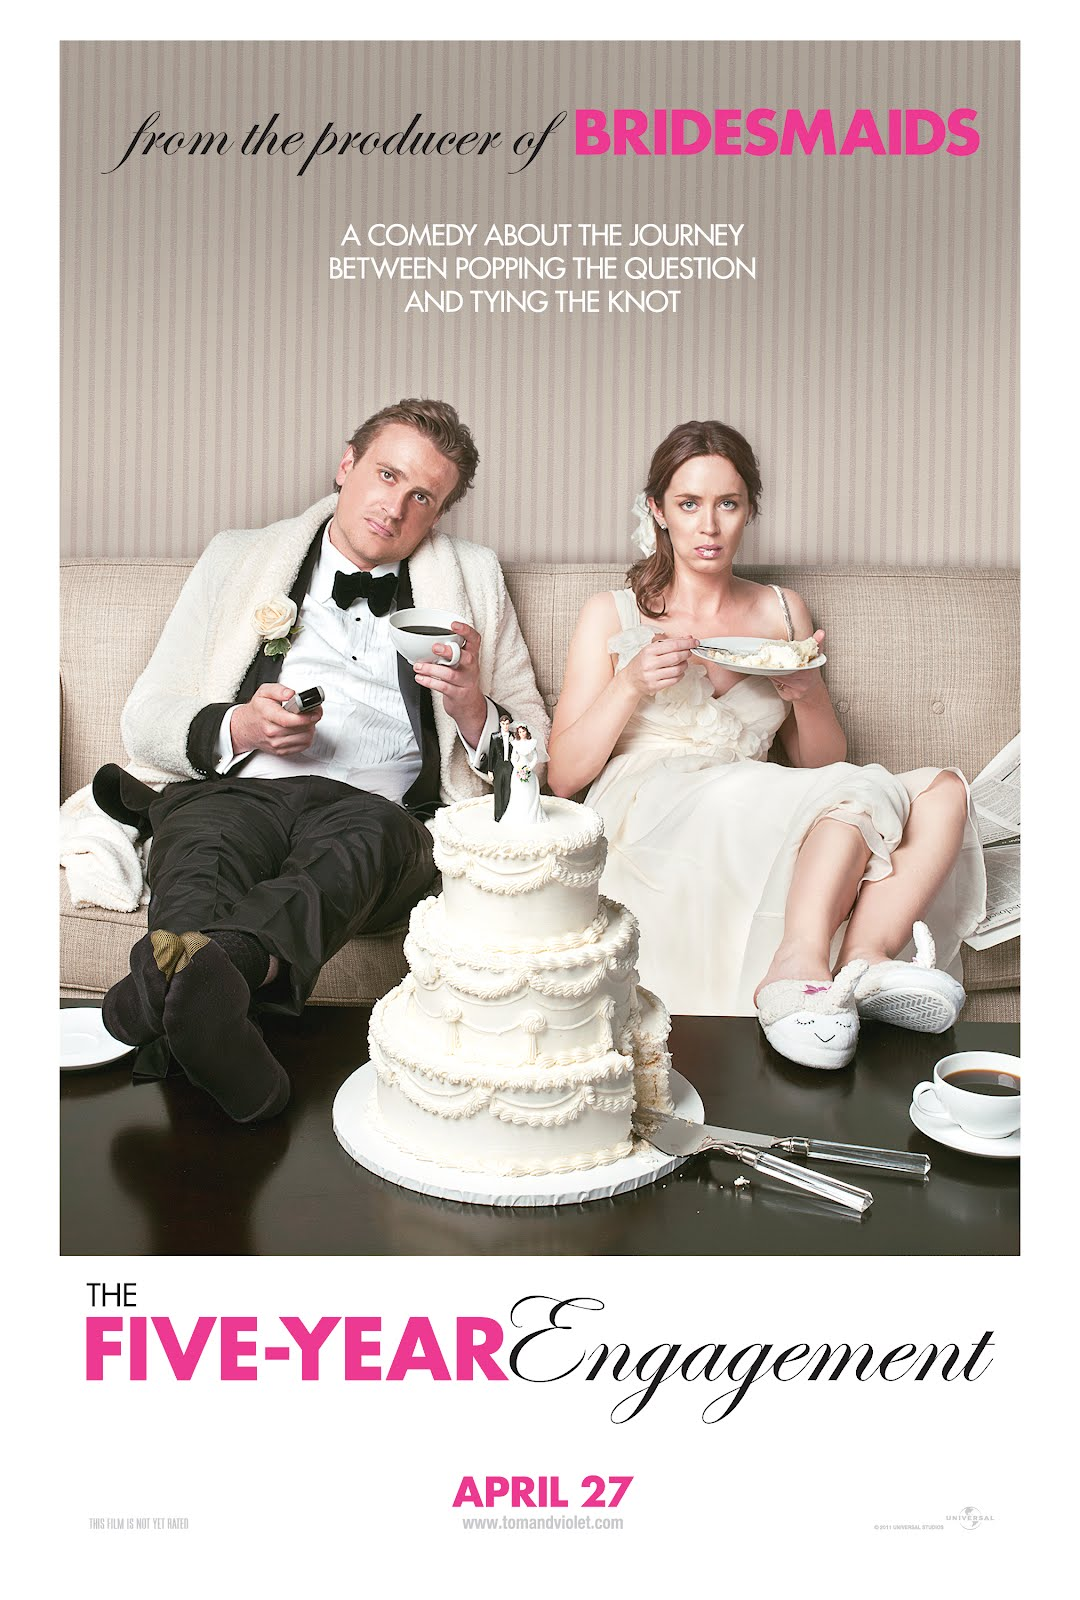 http://1.bp.blogspot.com/-fWswUnX-JNY/T5GUJnk7DVI/AAAAAAAAMmE/EL2xiSqPUq0/s1600/the-five-year-engagement-movie-poster.jpg